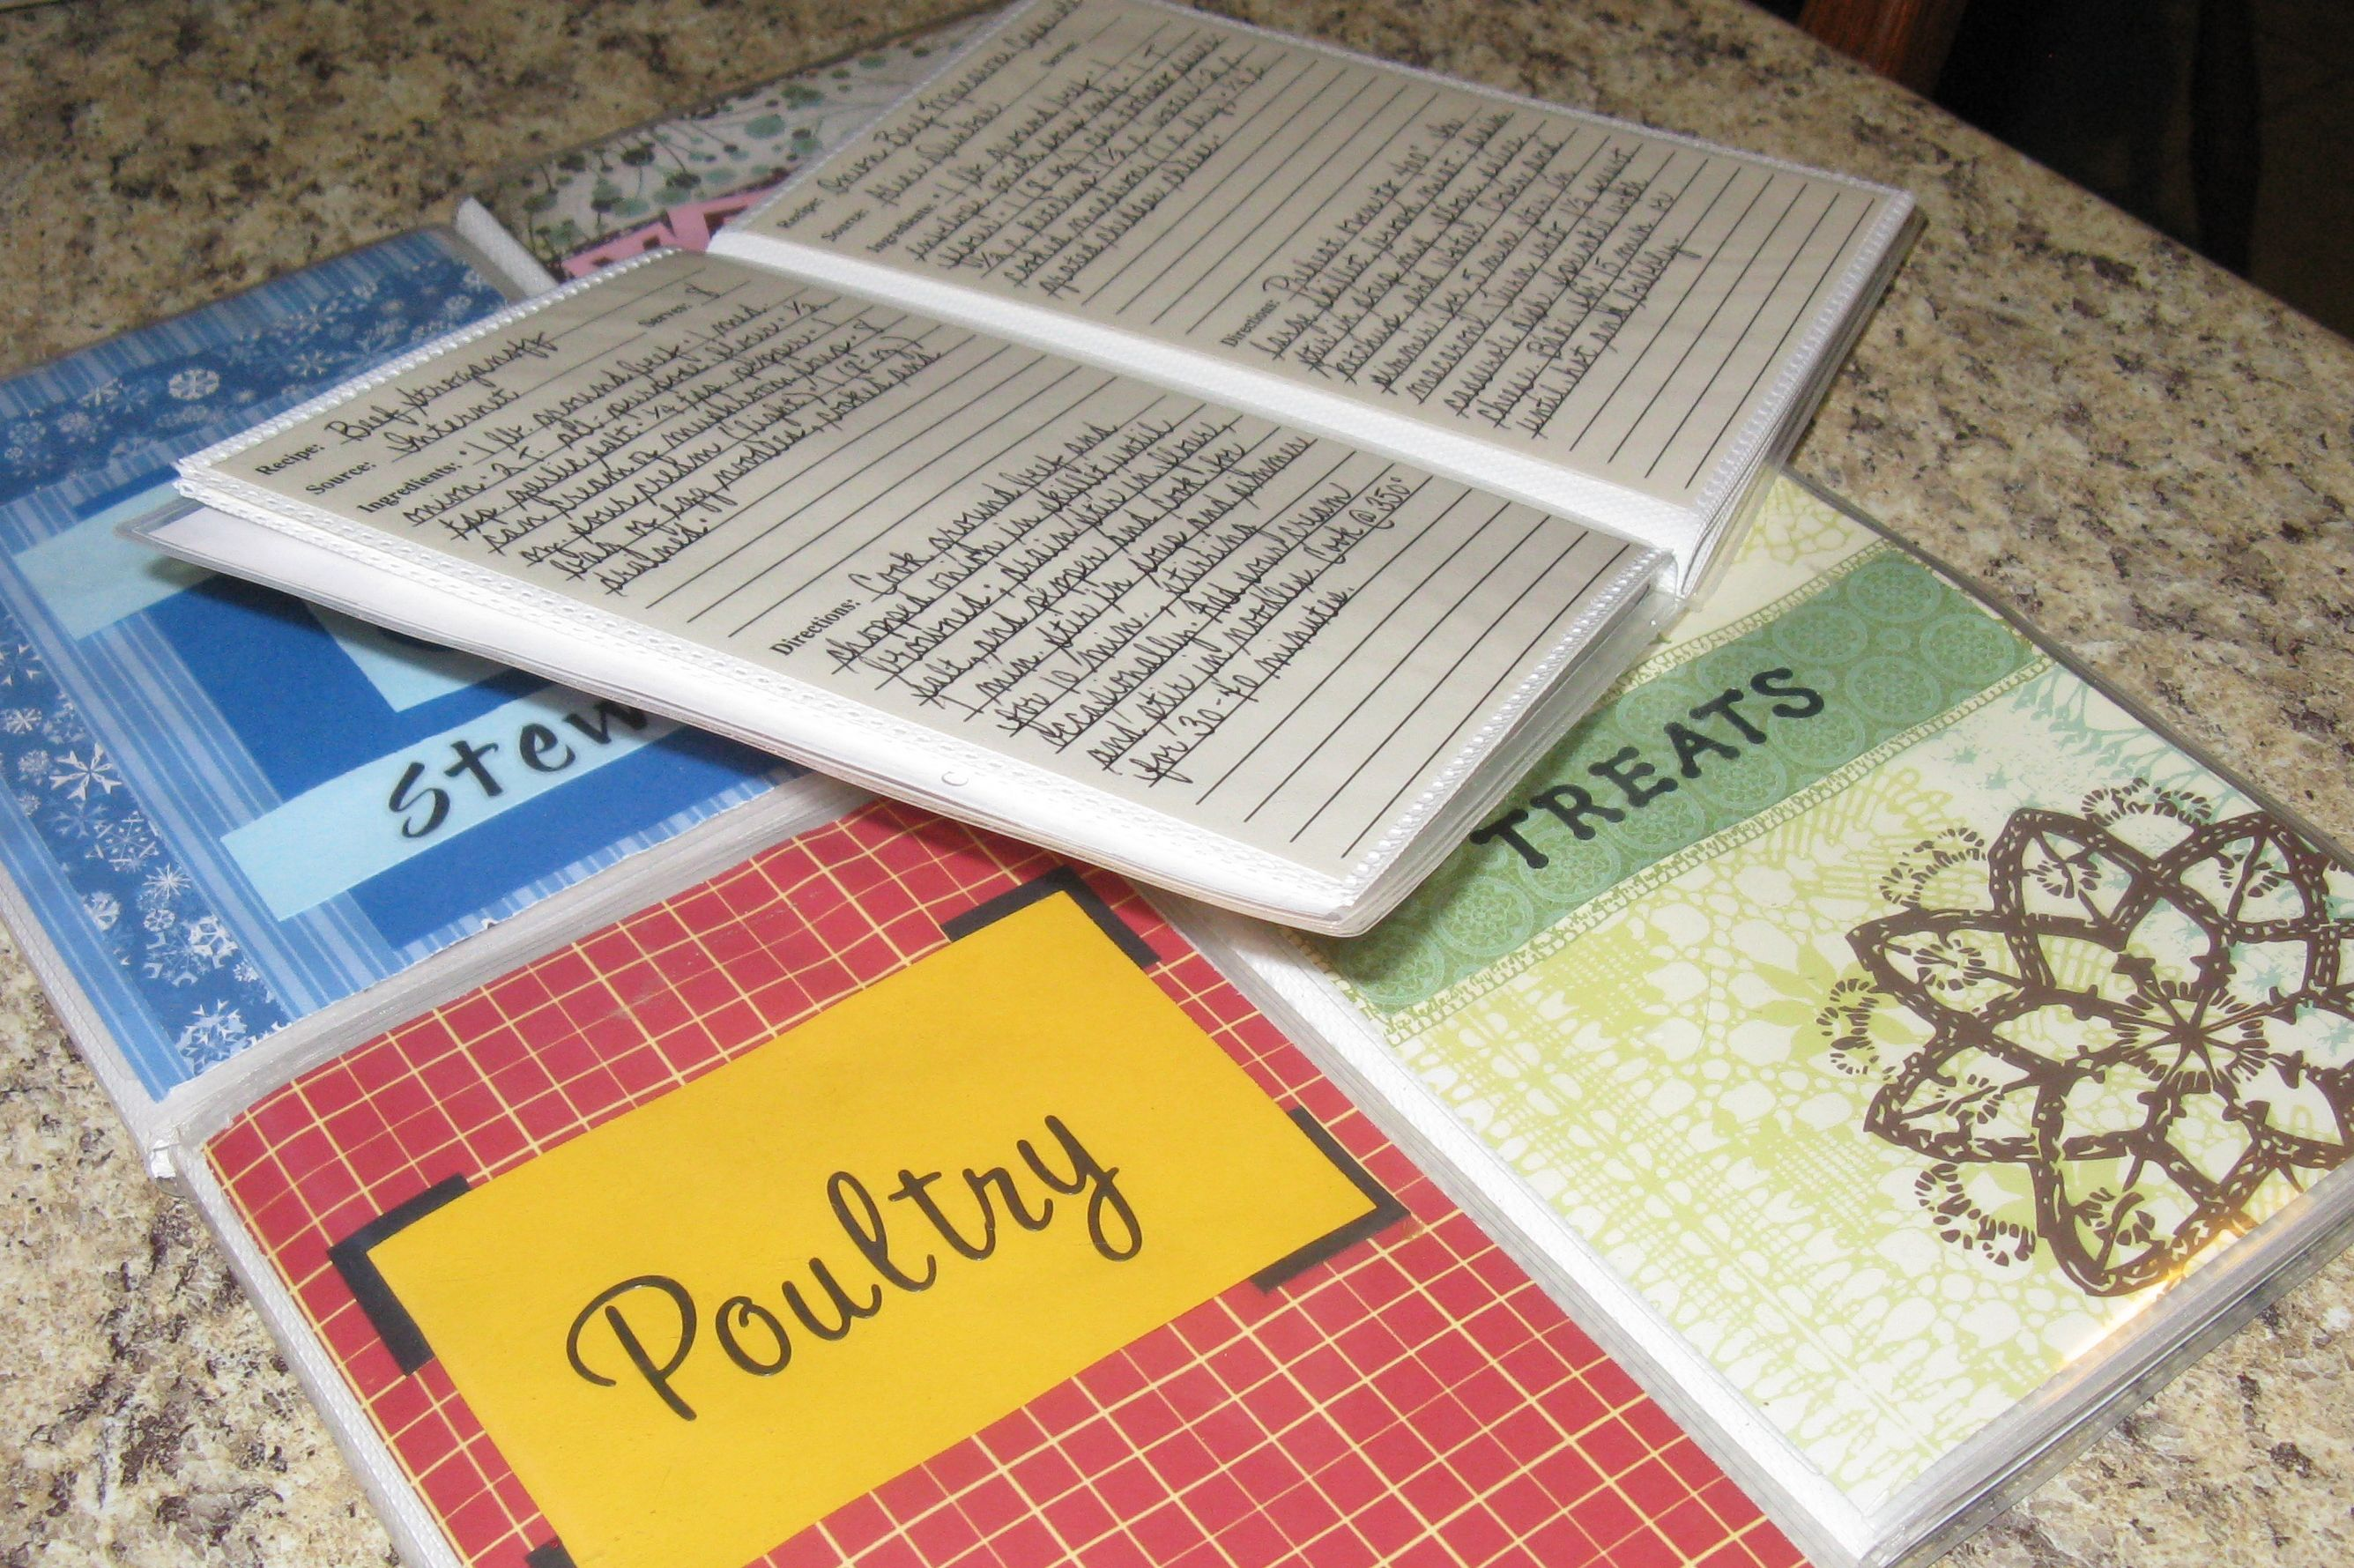 My new recipe system. I bought 4x6 photo albums from Target and ...